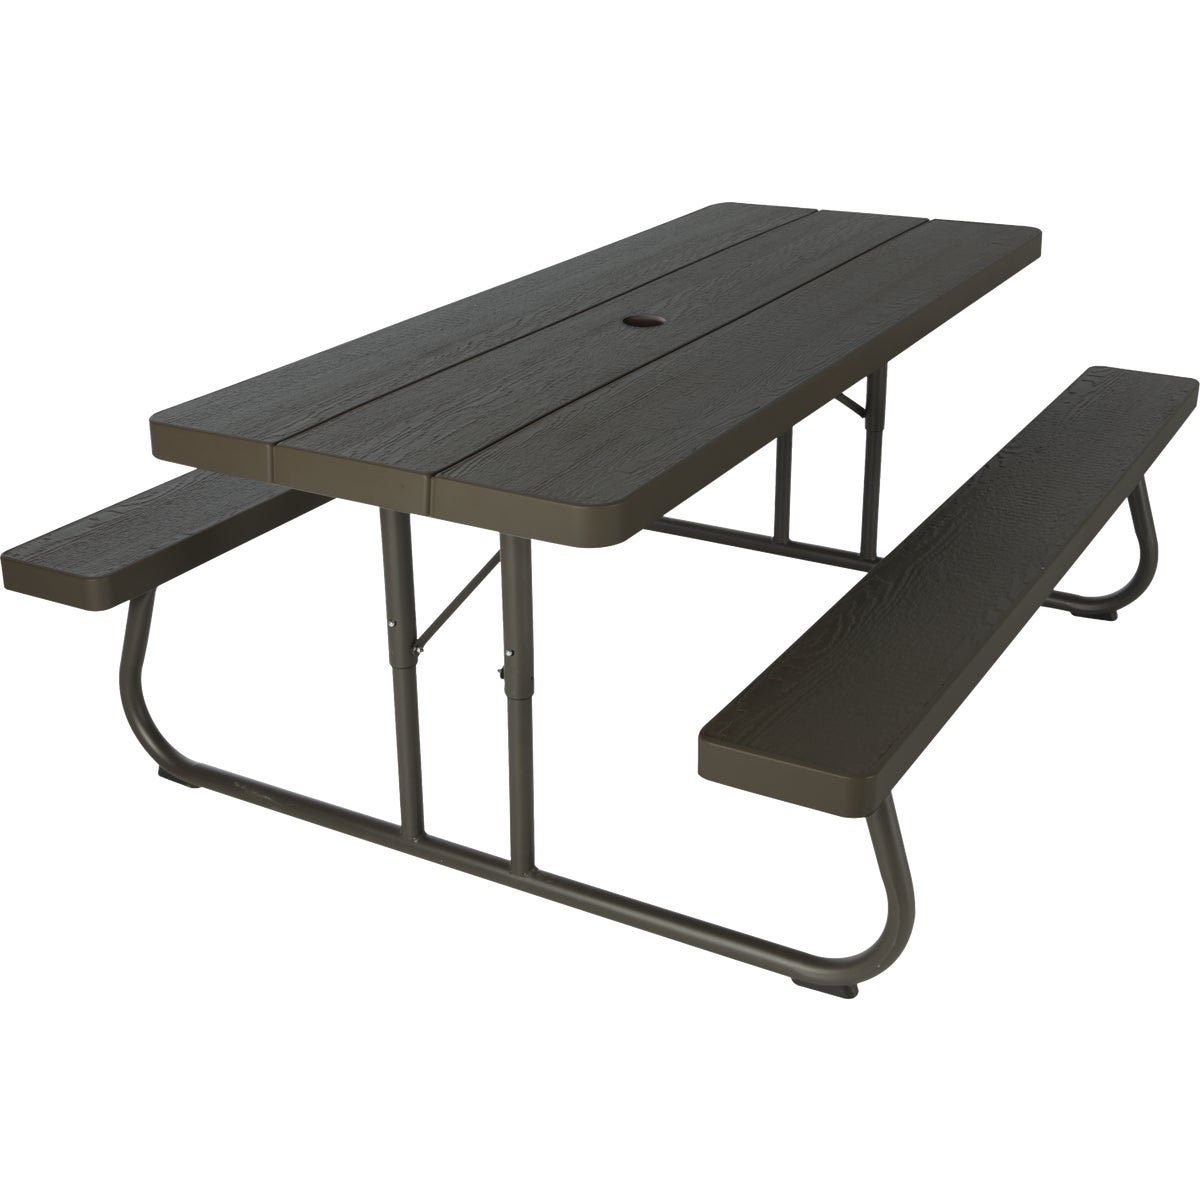 PUTTY 6' PICNIC TABLE - 2119 by Lifetime  Xiamen